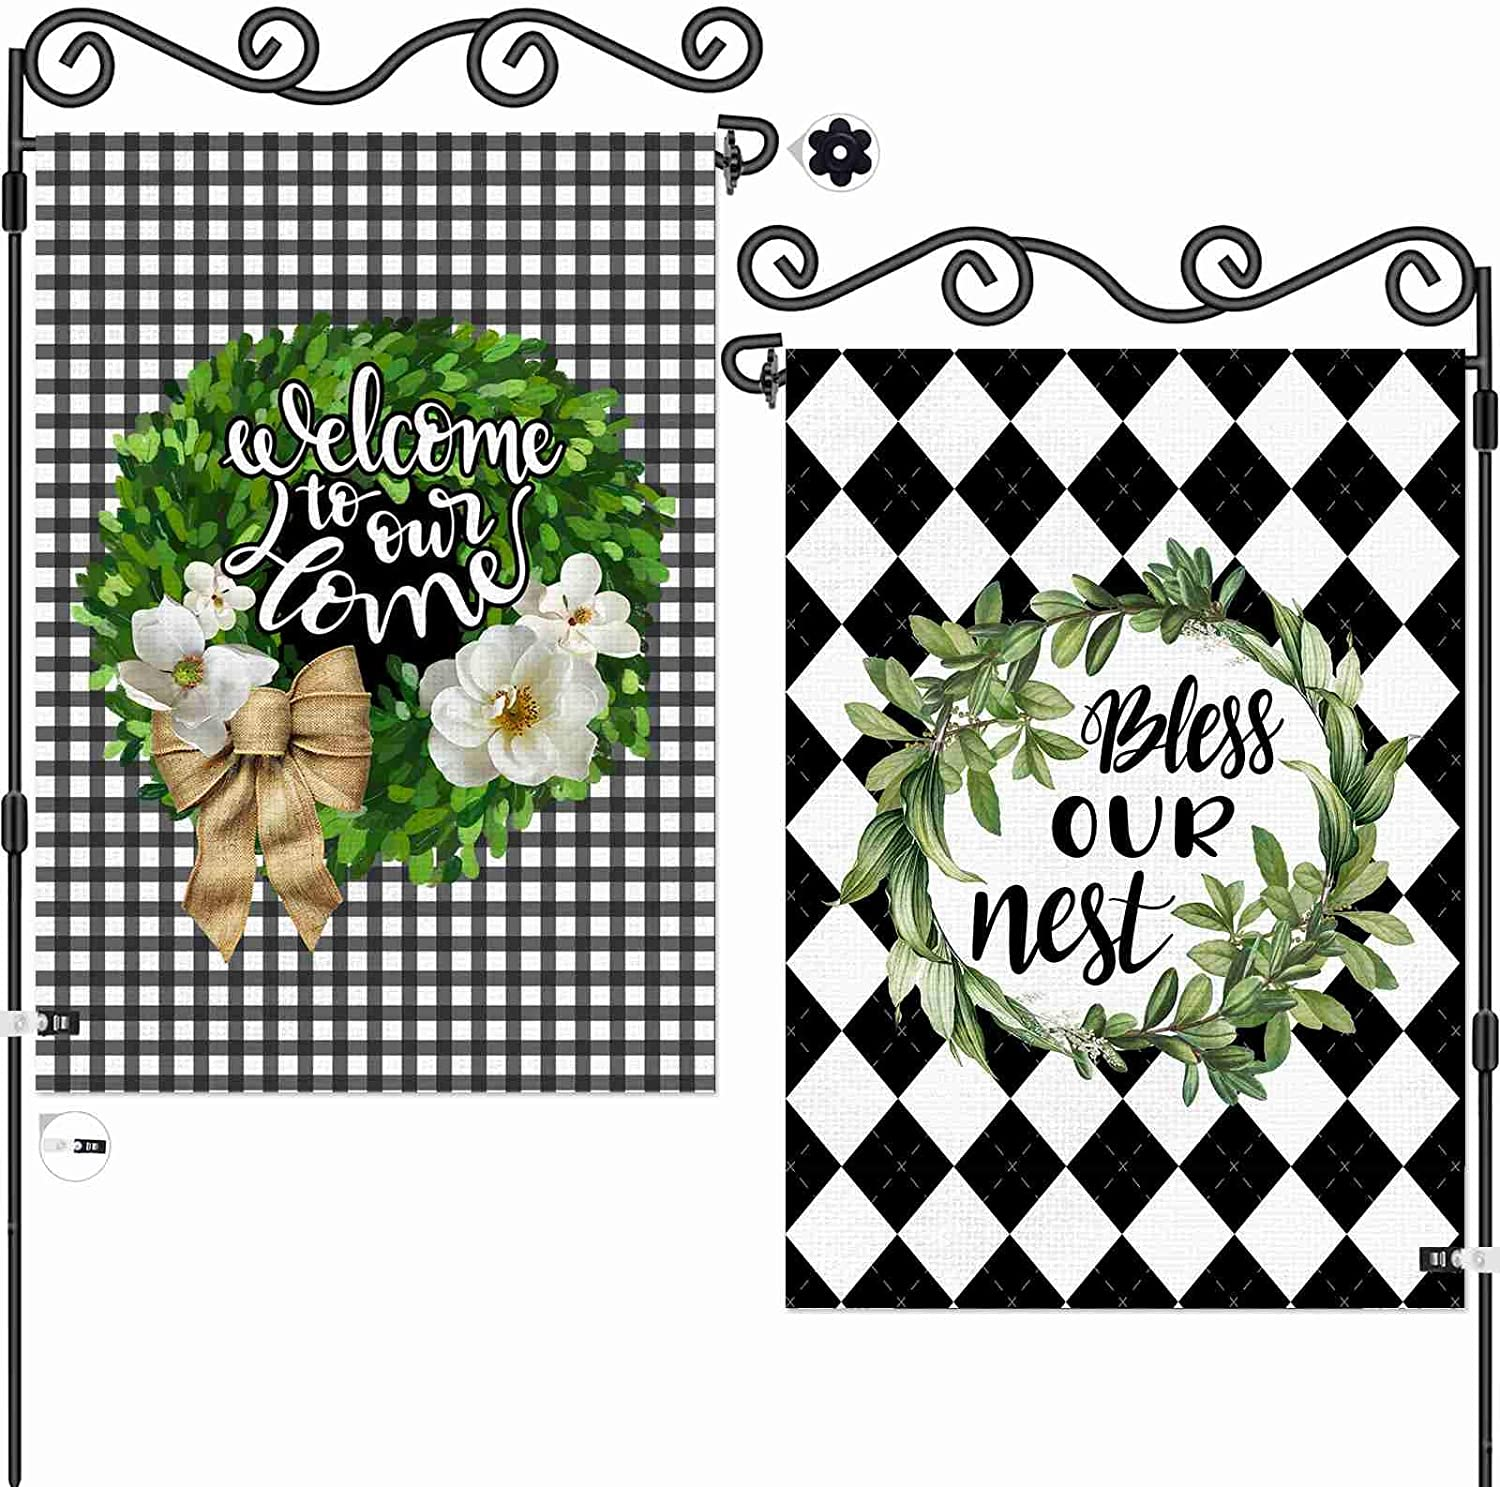 AOKDEER Seasonal Boxwood Wreath Welcome Garden Flag 12.5x18 Prime, 2-in-1 Double Sided Burlap Buffalo Check Plaid House Flags, Rustic Farmhouse Sweet Home Yard Signs Gift for Patio Lawn Outdoor Decor